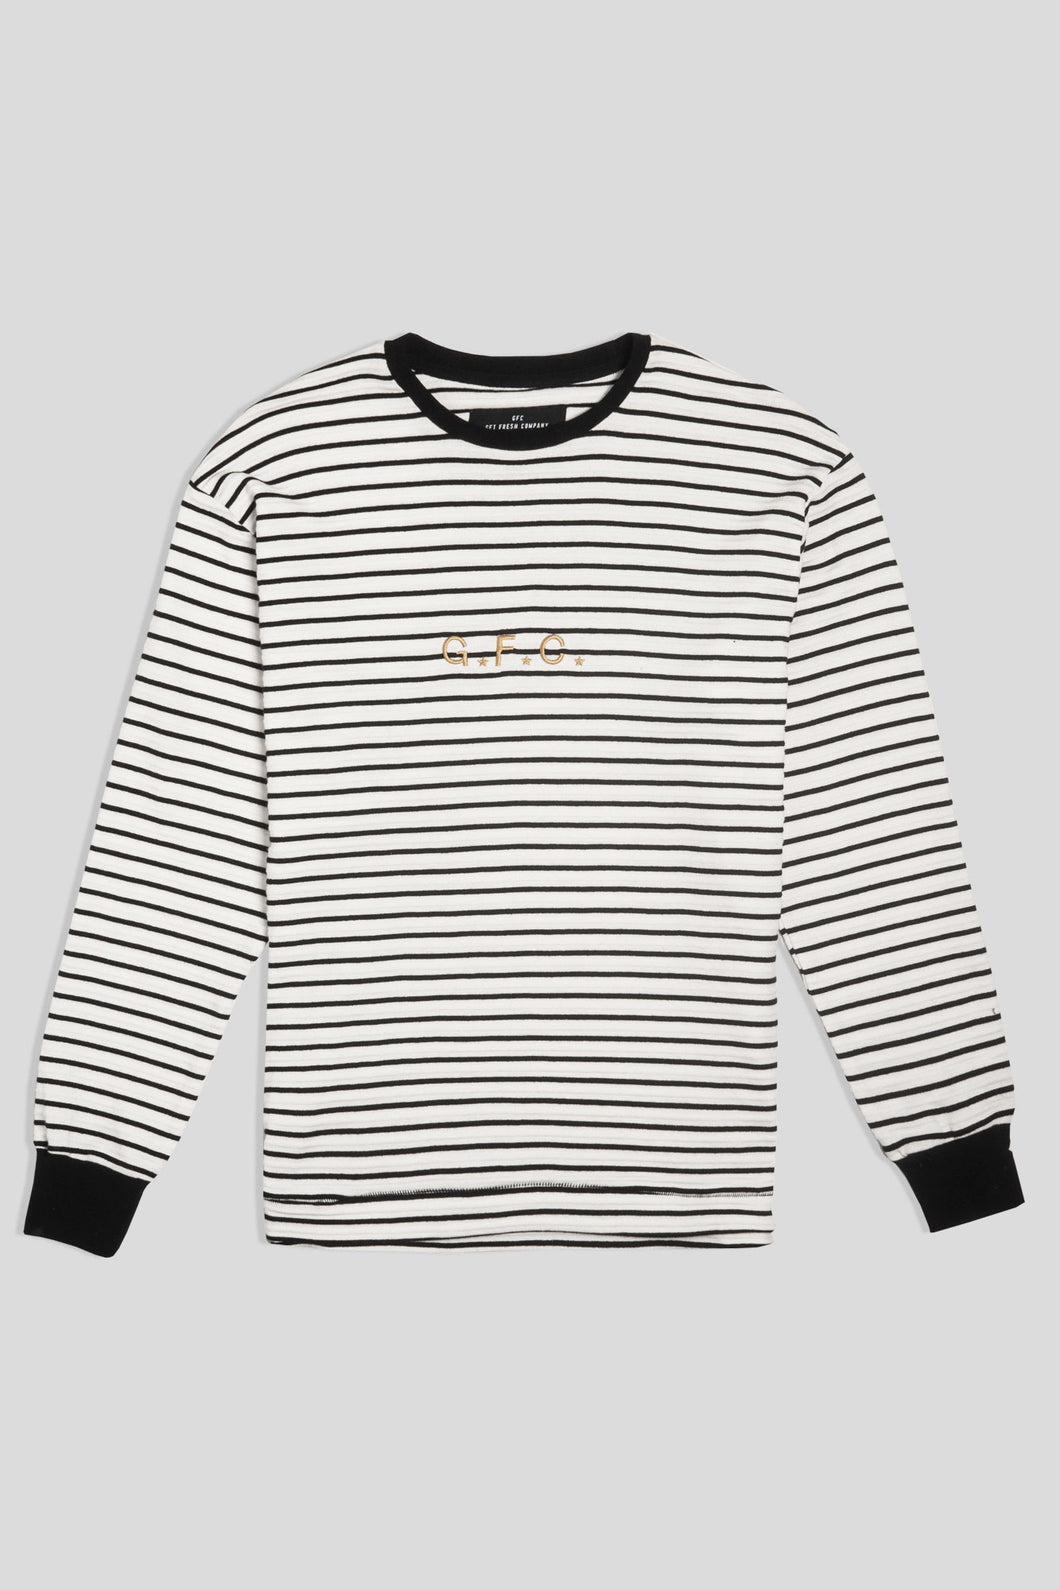 GFC - Bloorline L/S - Black/White/Yellow